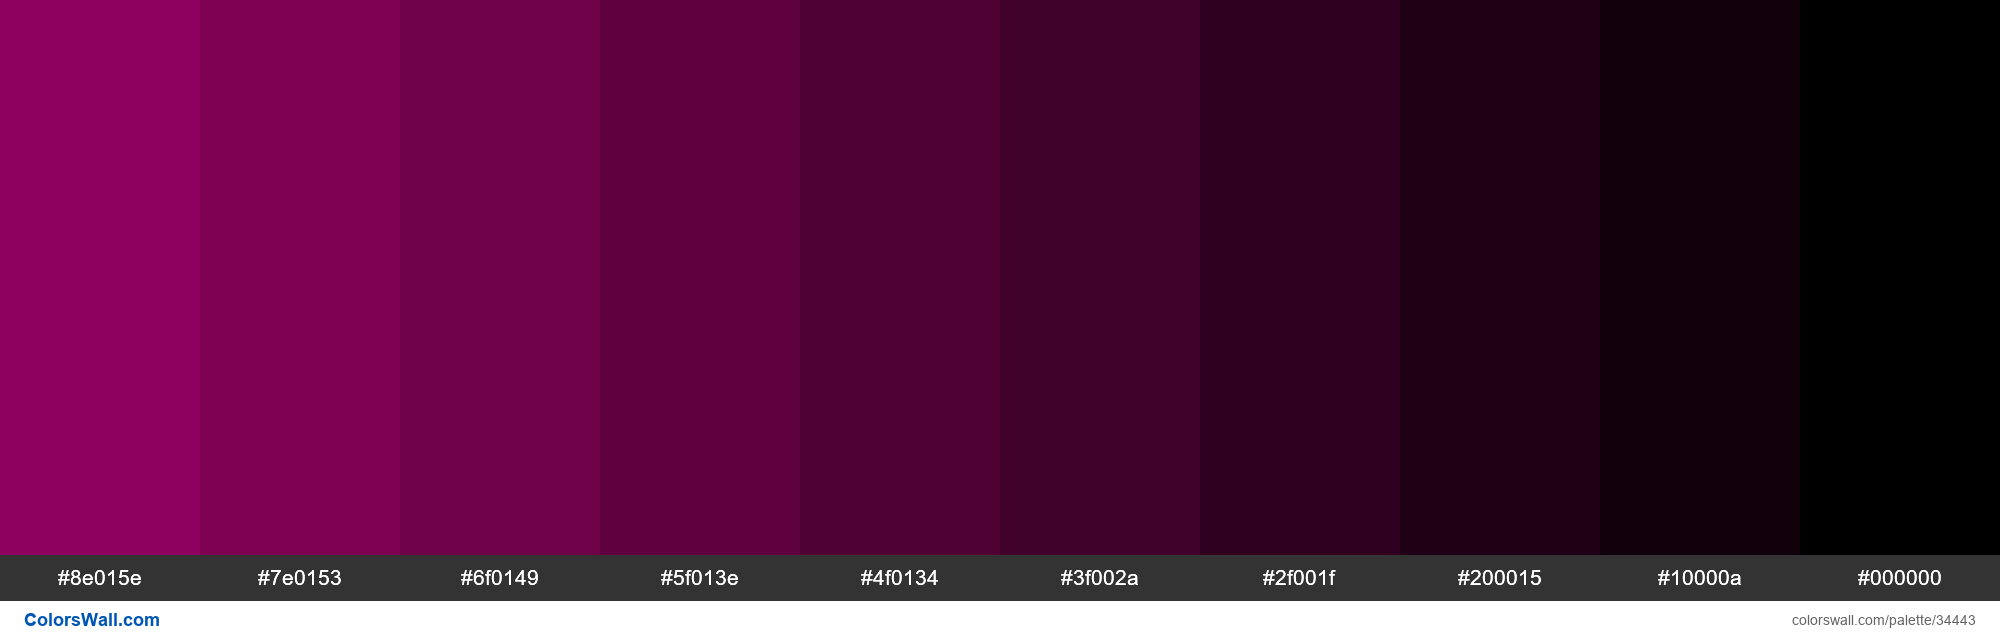 Shades Xkcd Color Red Violet 9e0168 Hex Hex Colors Dark Magenta Creative Colour